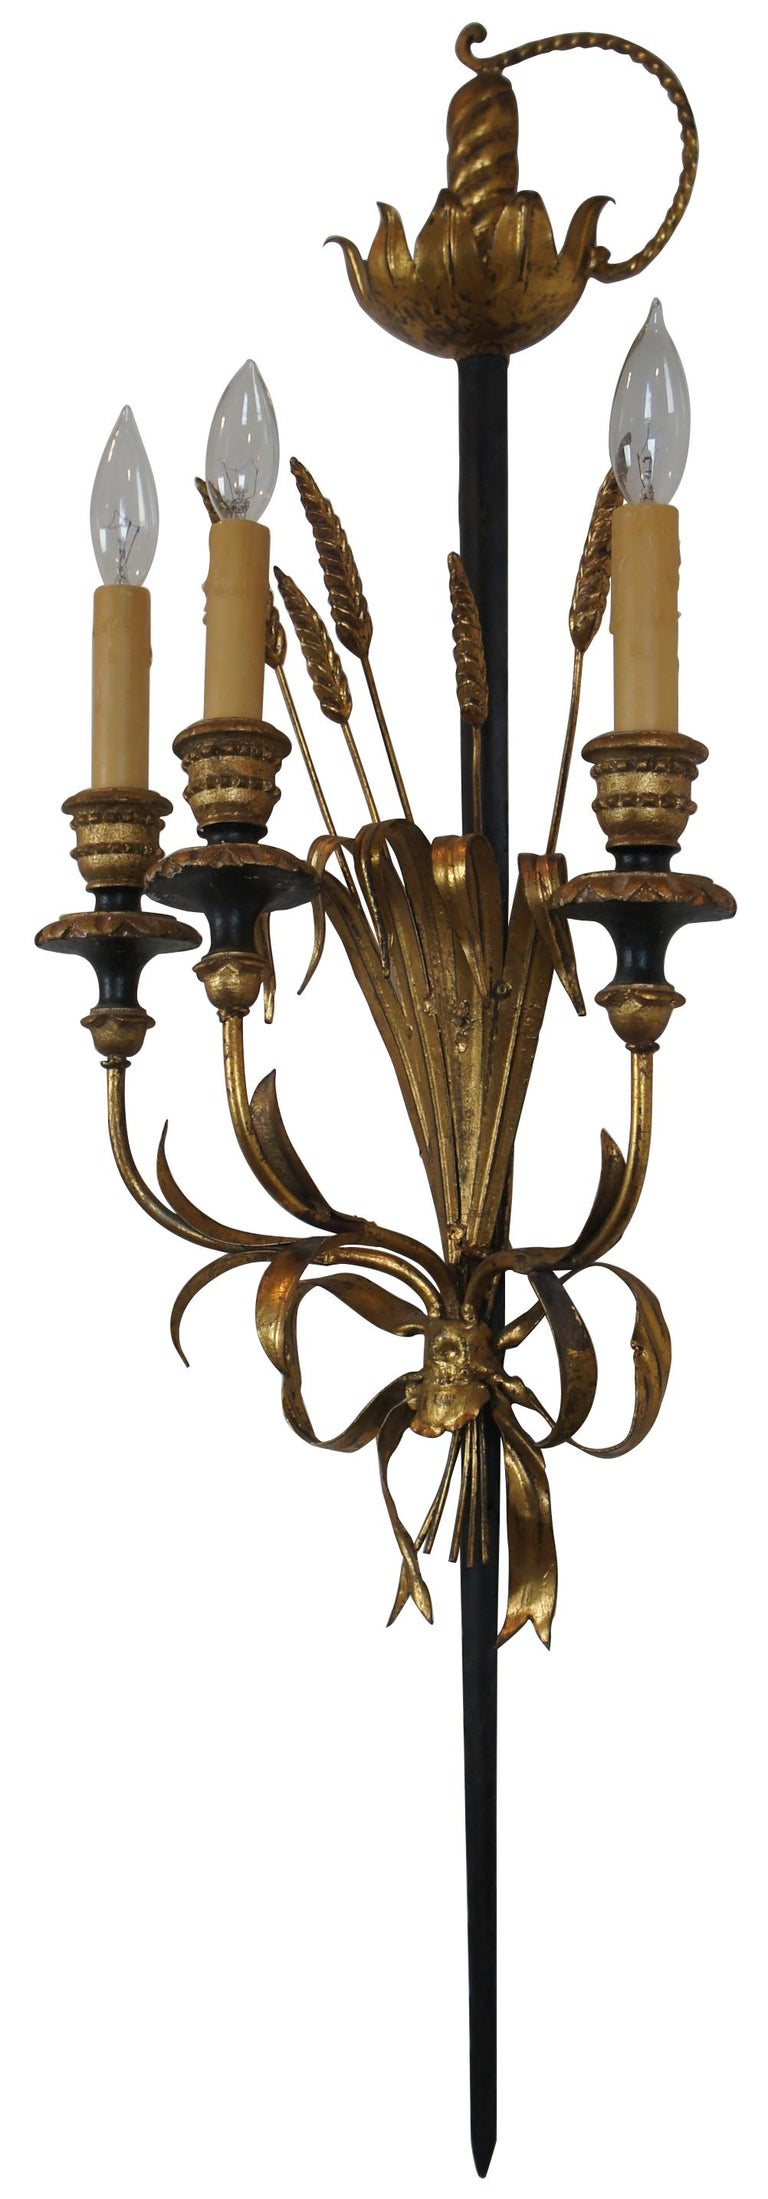 Italian Florentine 3-Light Wheat Sword Tole Candelabra Wall Sconce Regency In Good Condition For Sale In Dayton, OH